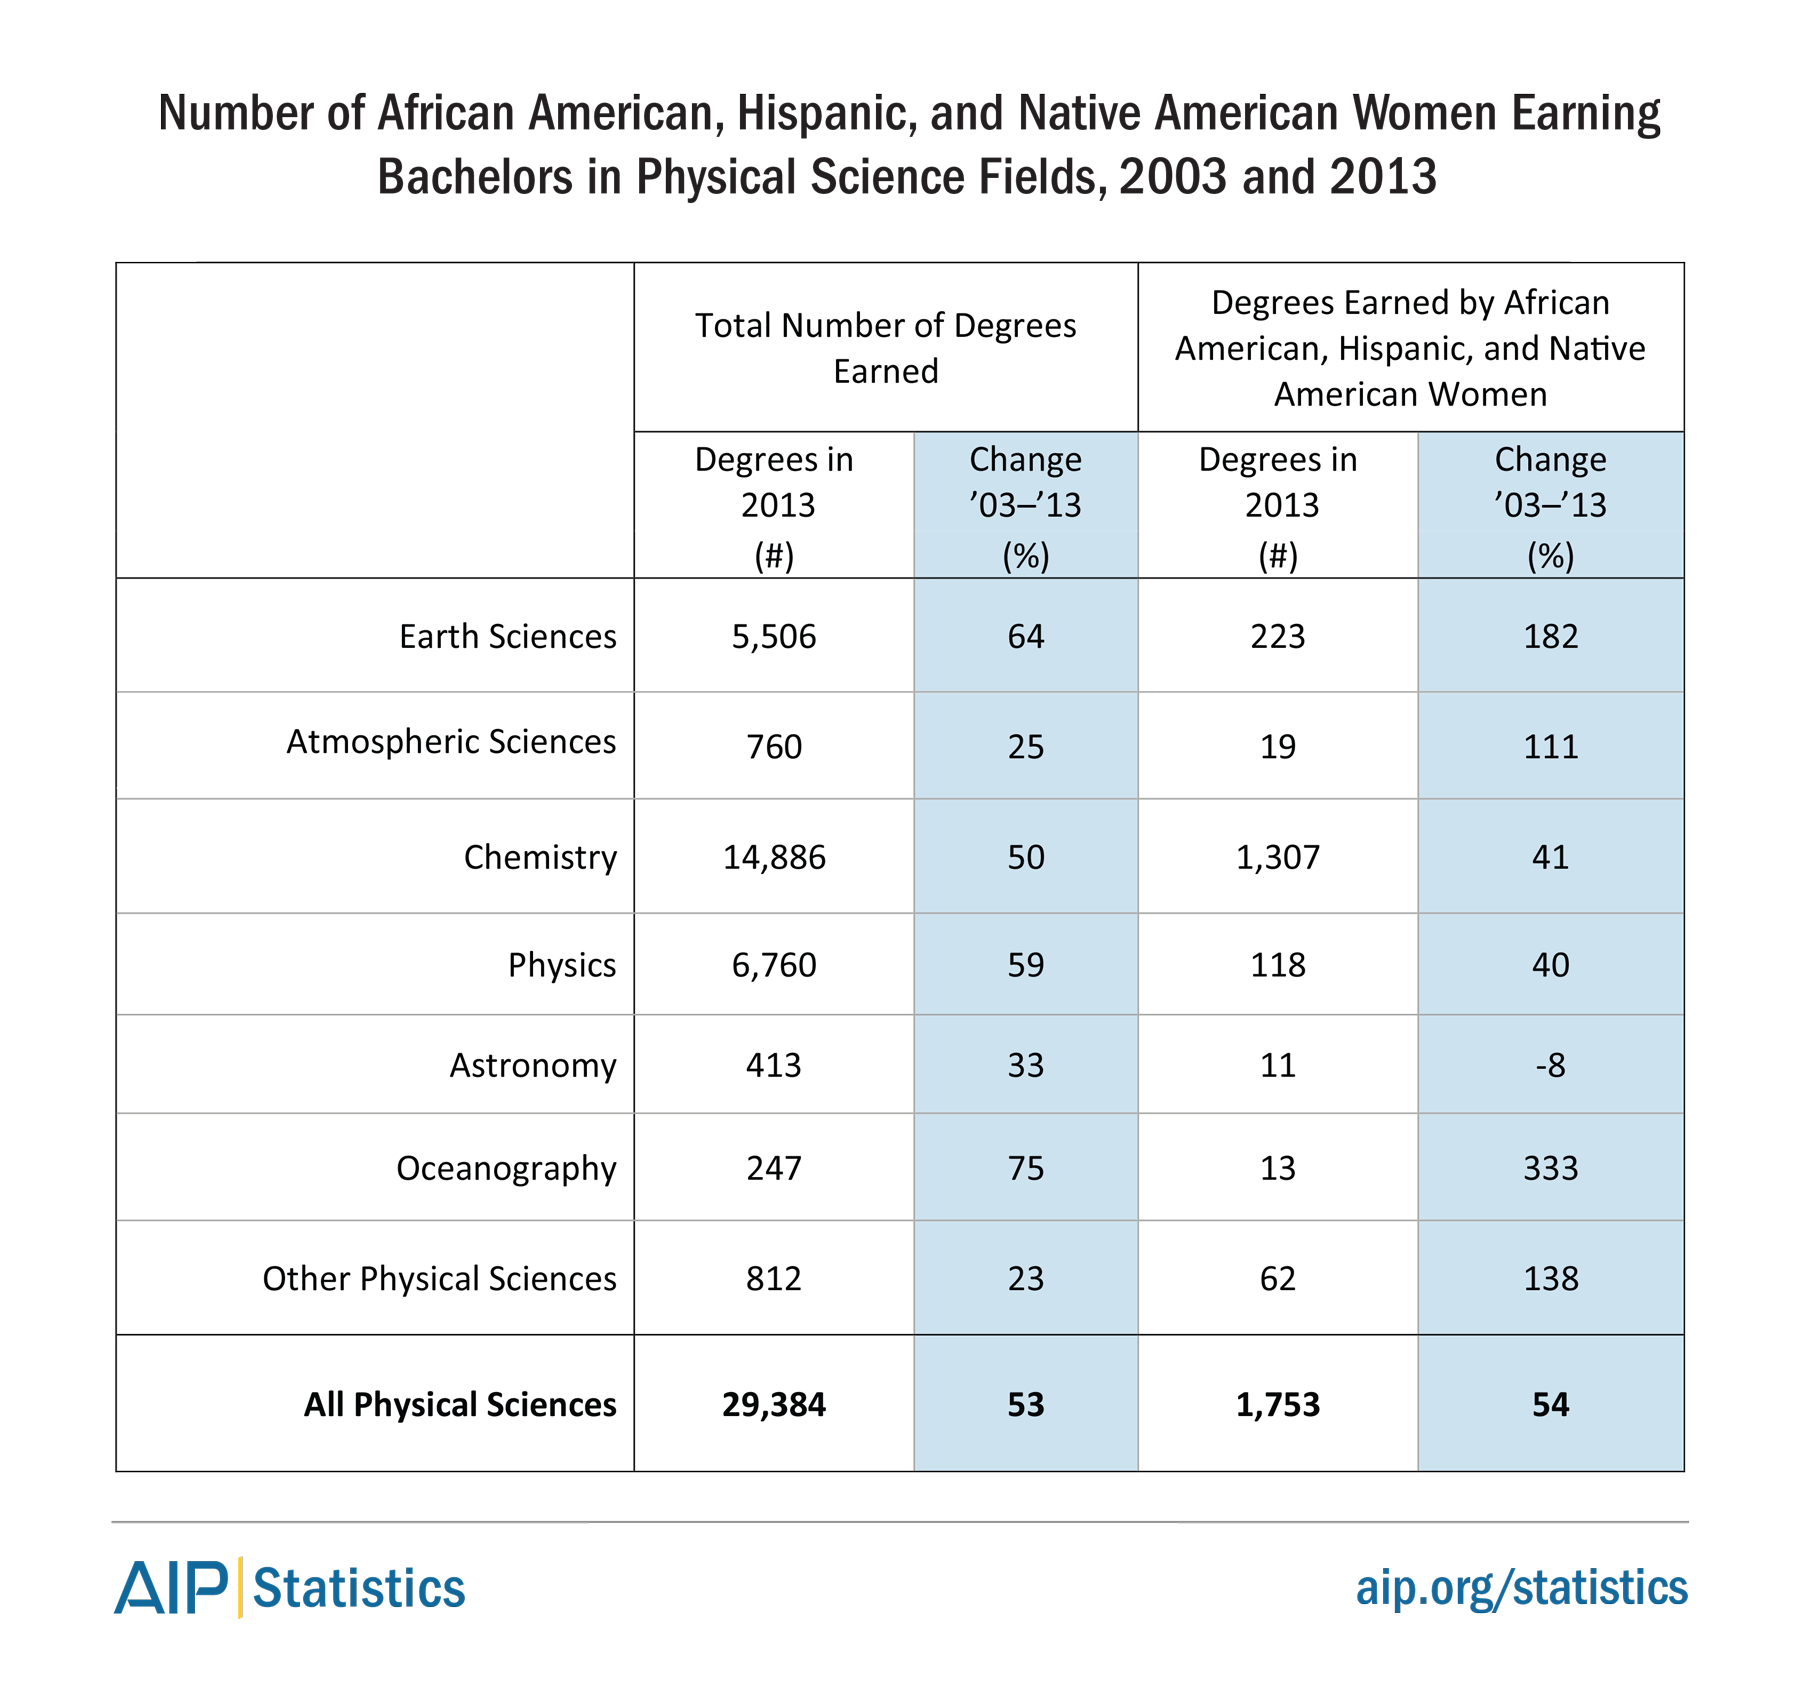 African American, Hispanic, and Native American Women among Bachelors in Physical Sciences and Engineering